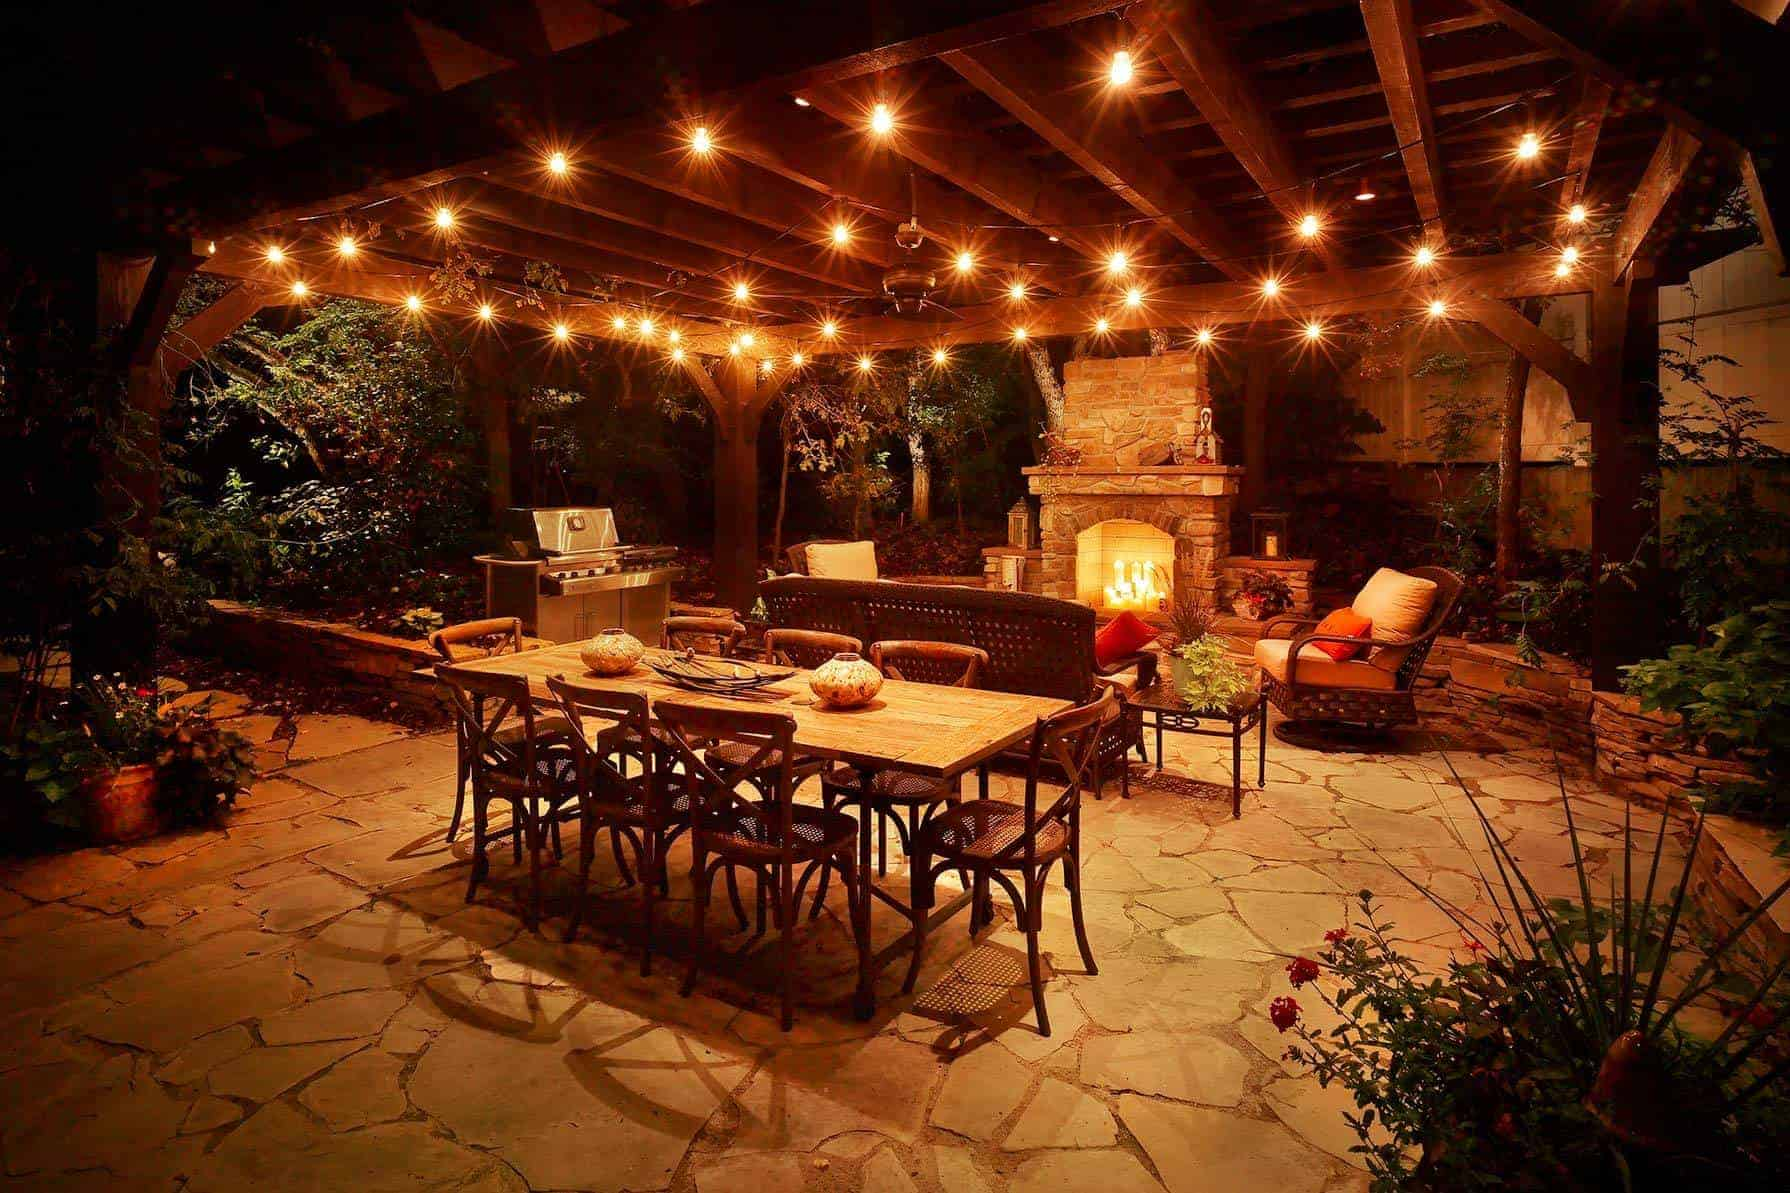 Lighting up your patio space is quite simple. Simply bring lights to any darker spots in your patio space.